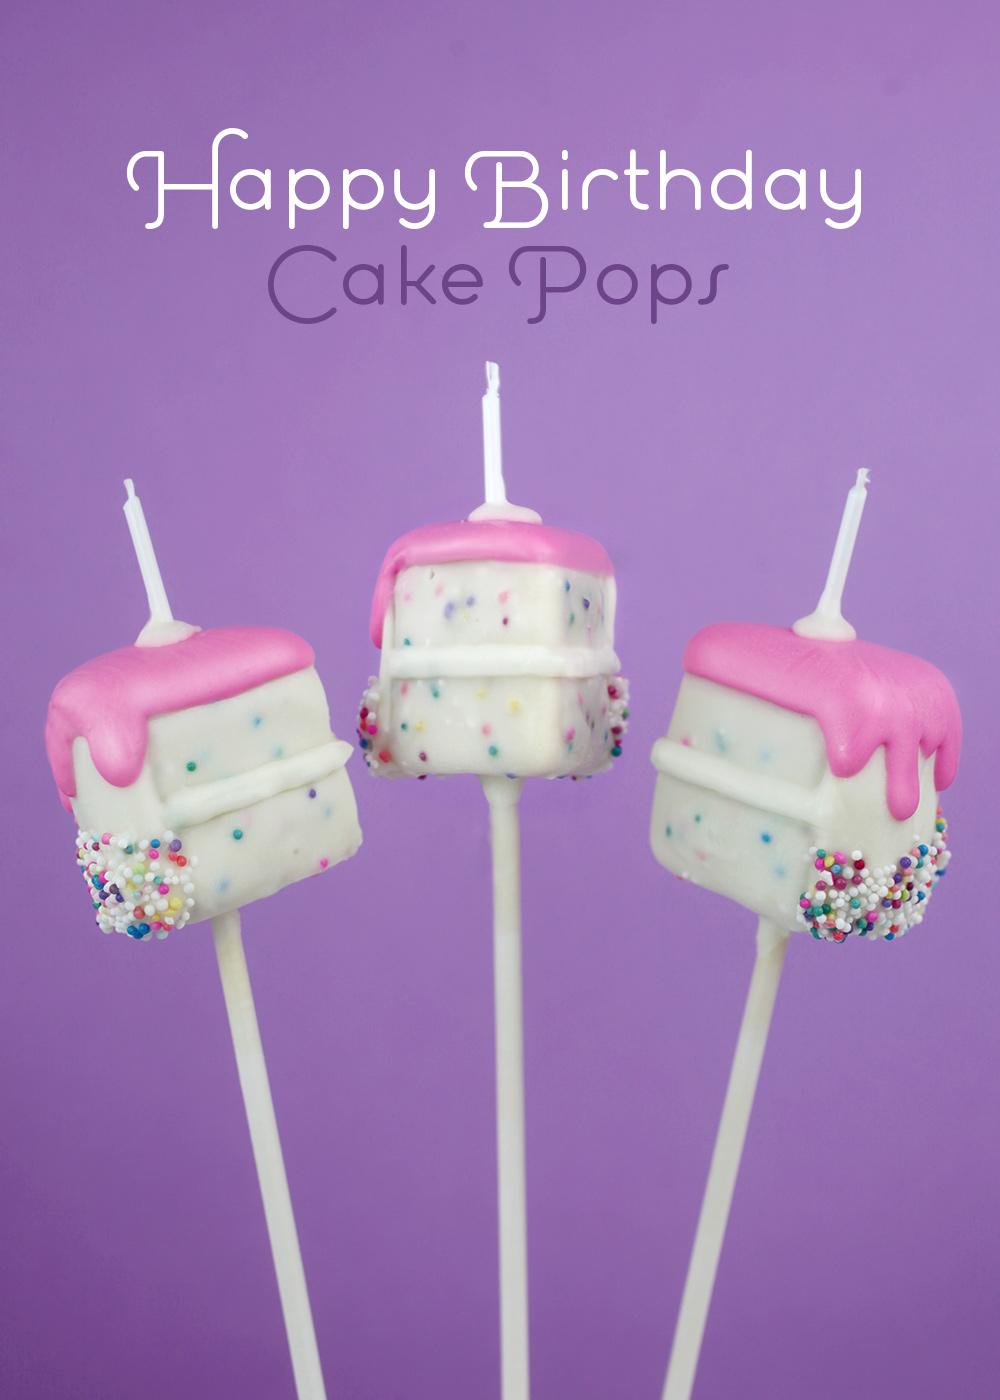 Cake Pops Turned 10 Years Old This Week Can You Believe It And Today Is Also National Day YAY So To Celebrate I Decided Make What Else